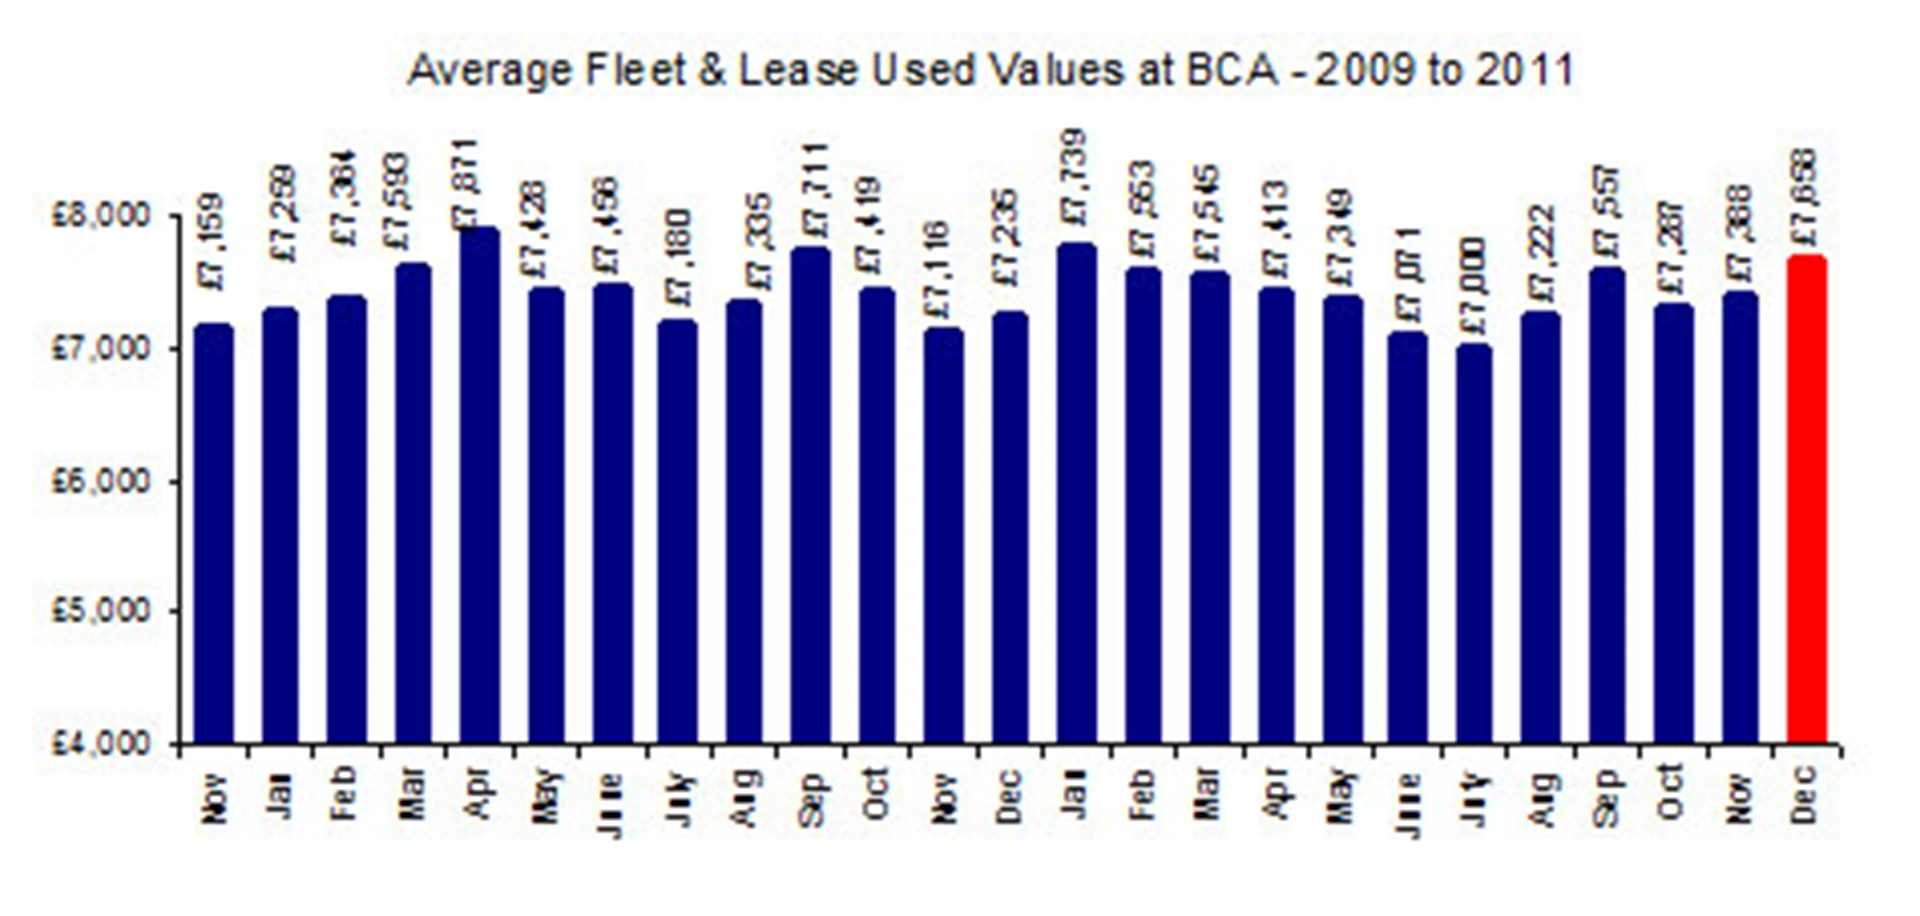 Fleet values